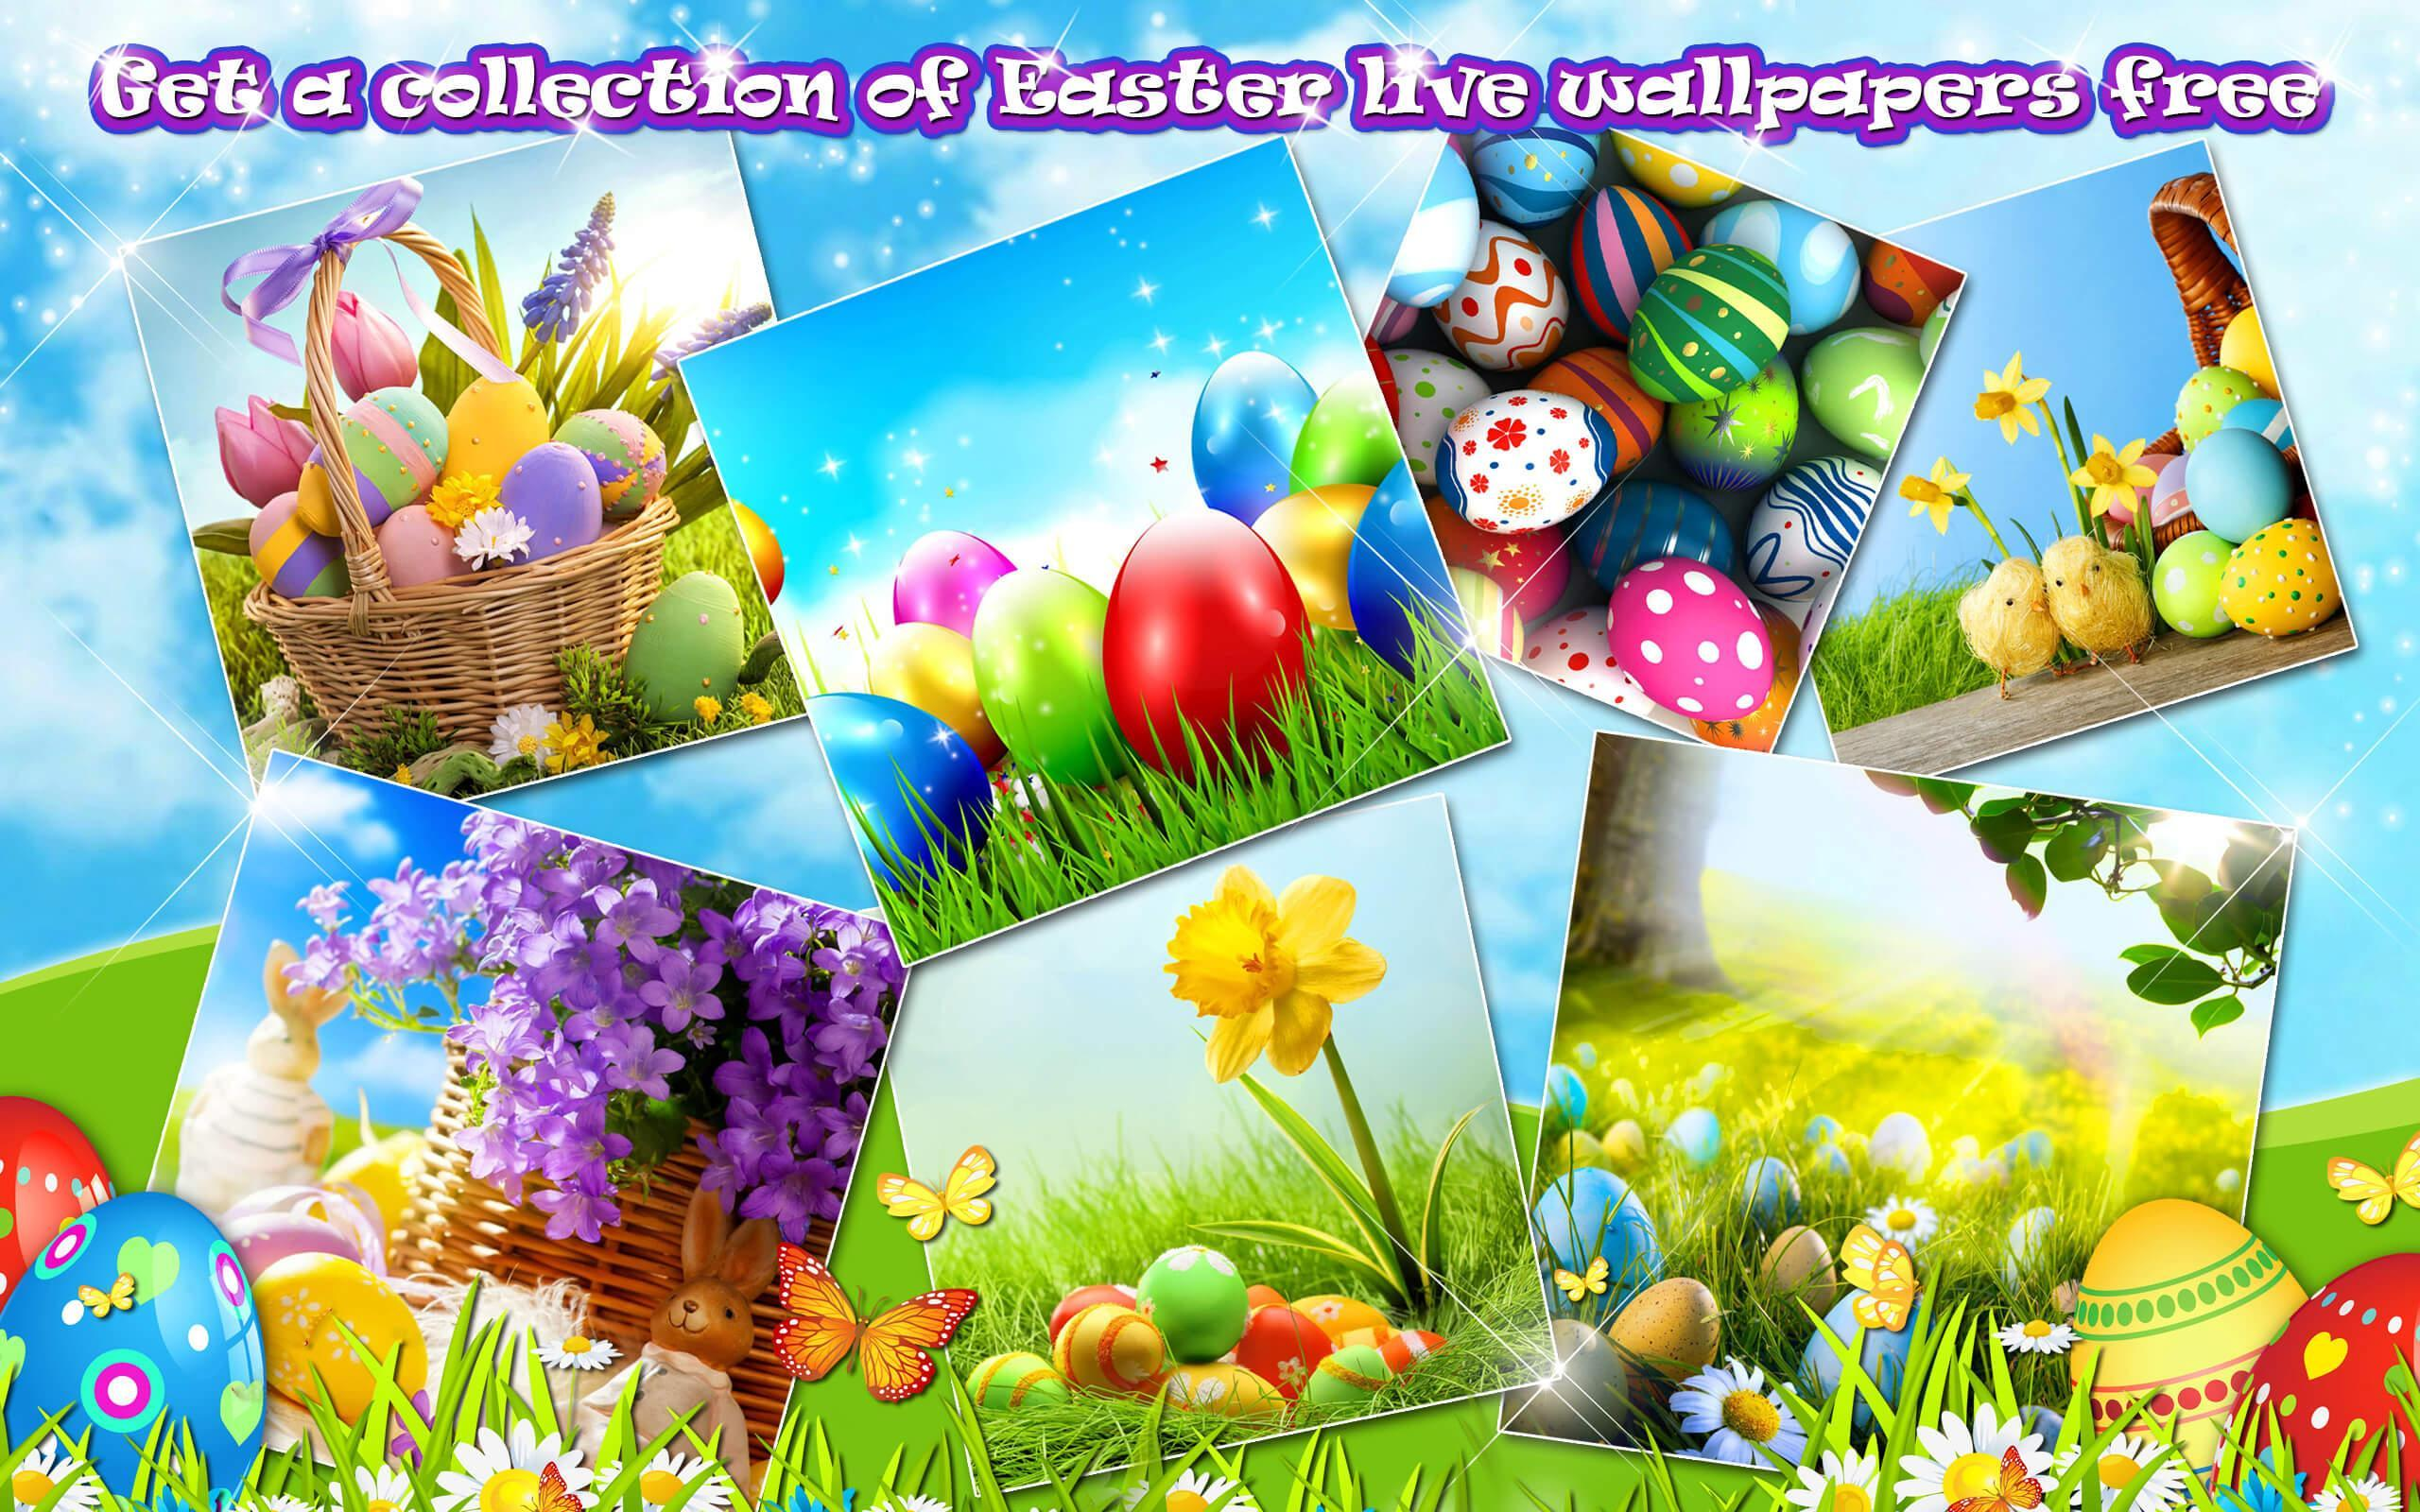 Happy Easter Wallpaper Live Backgrounds For Android Apk Download